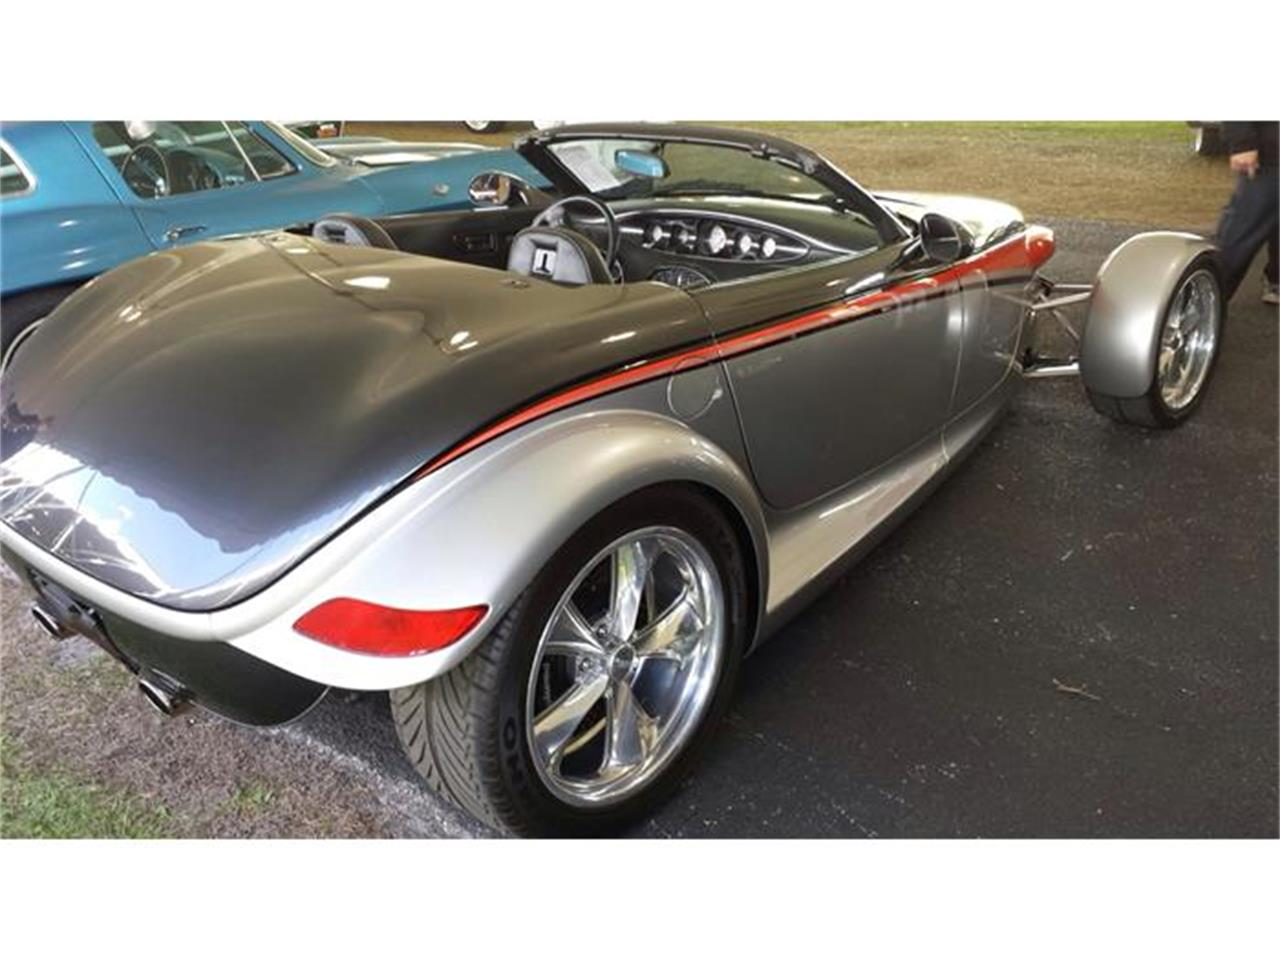 Large Picture of '99 Chrysler Prowler - $89,900.00 - ARNS